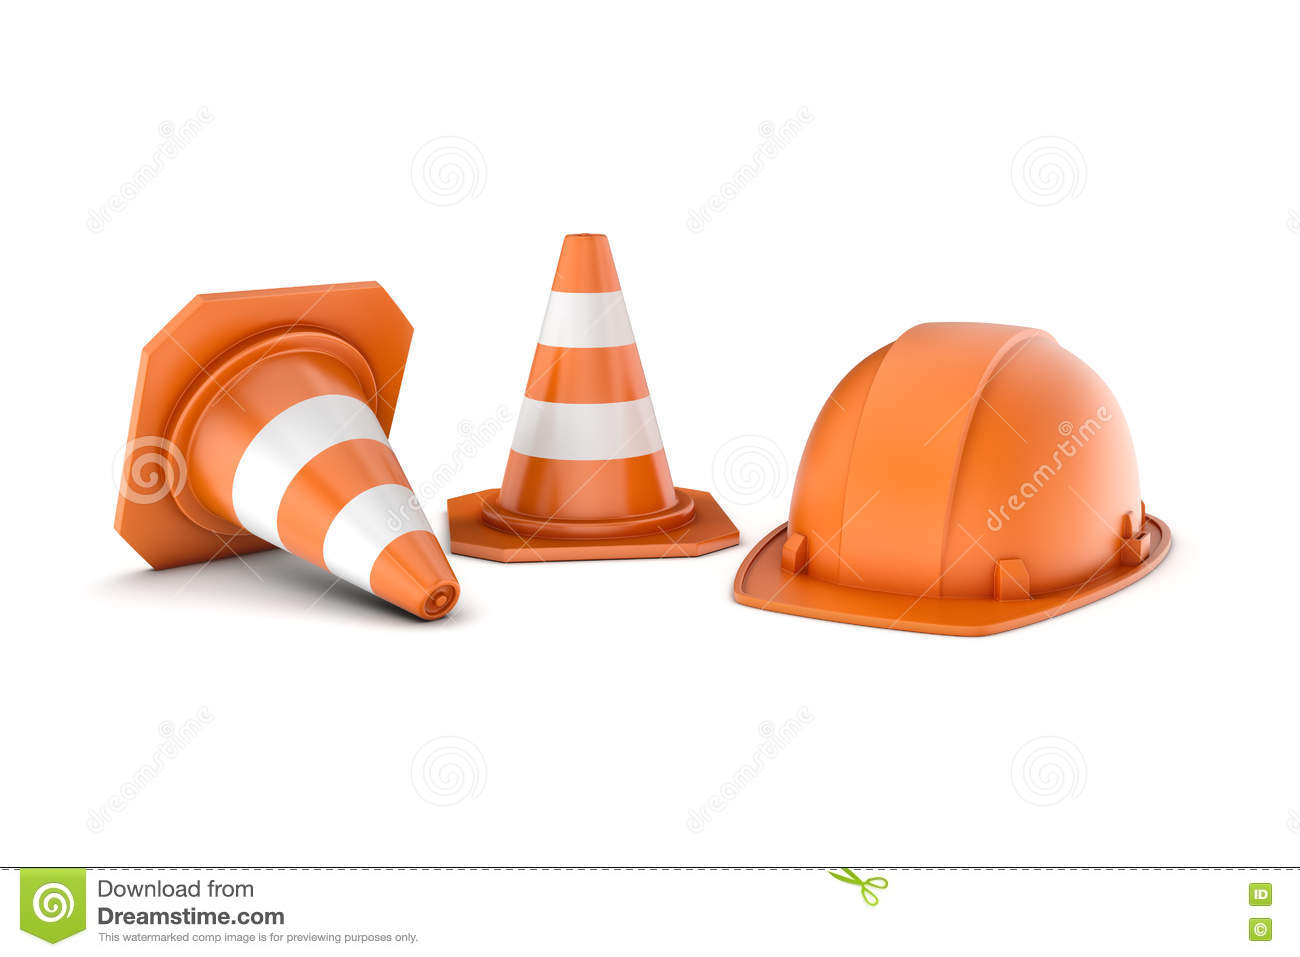 Rendering Of Two Striped Road Cones And Helmet, All Isolated On.